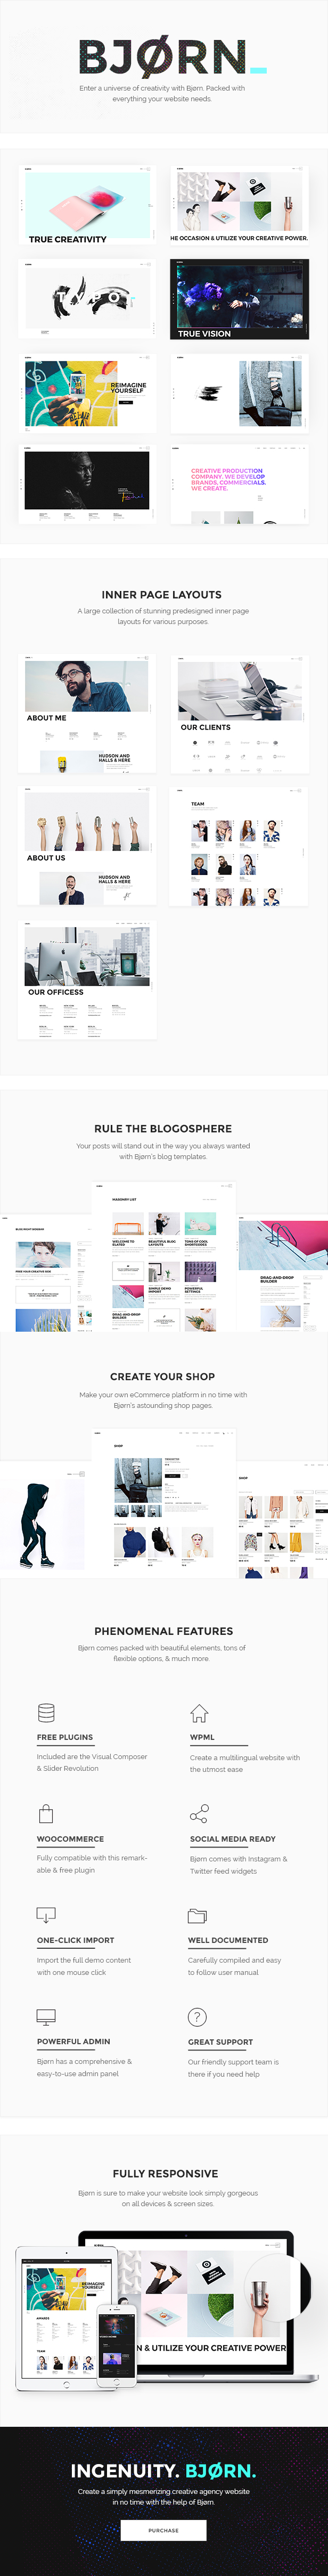 WordPress theme Bjorn - A Contemporary and Clean Multipurpose Theme (Creative)